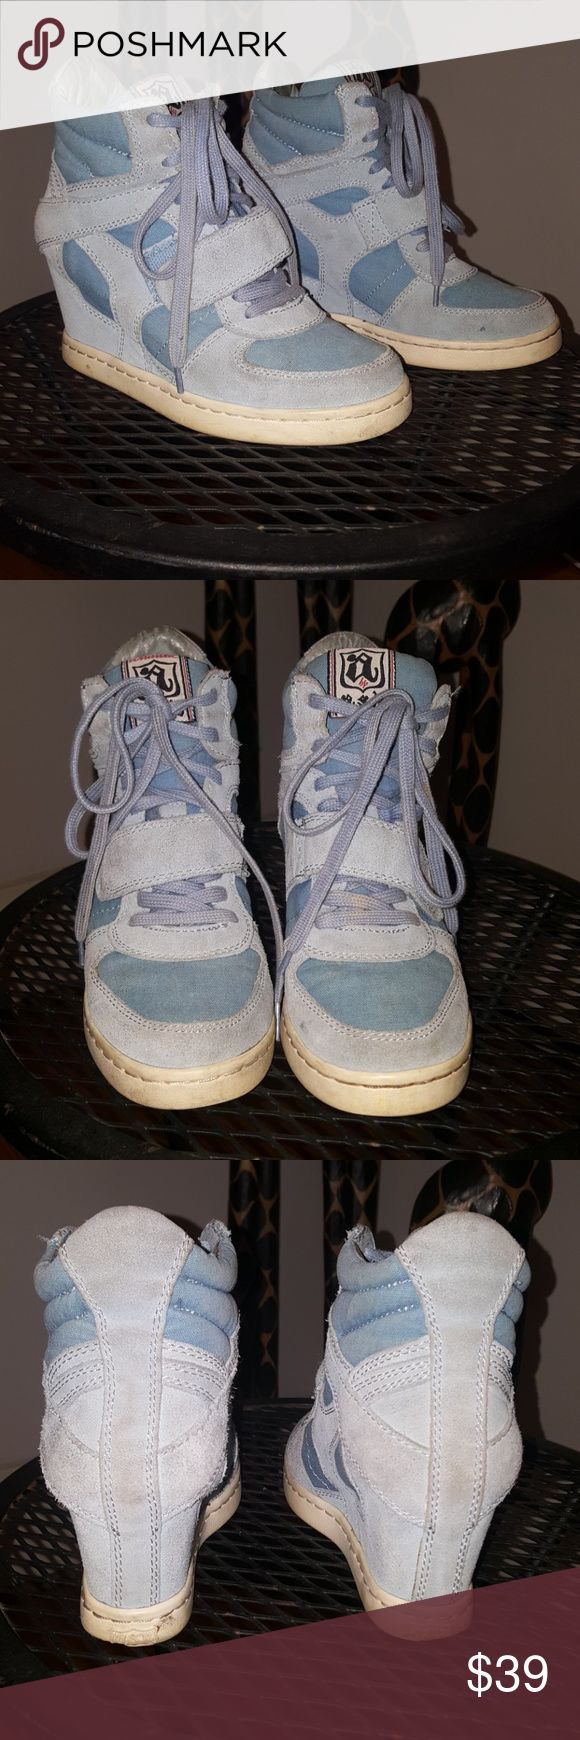 "Ash ""Cool"" Baby Blue Wedge Sneakers Ash ""Cool"" Baby Blue Wedge Sneakers. Normal wear and very good condition. Size 37 European which equals a 7 US but please note Ash shoes run small. Would best fit a size 6 or 6.5. Ash Shoes Athletic Shoes"